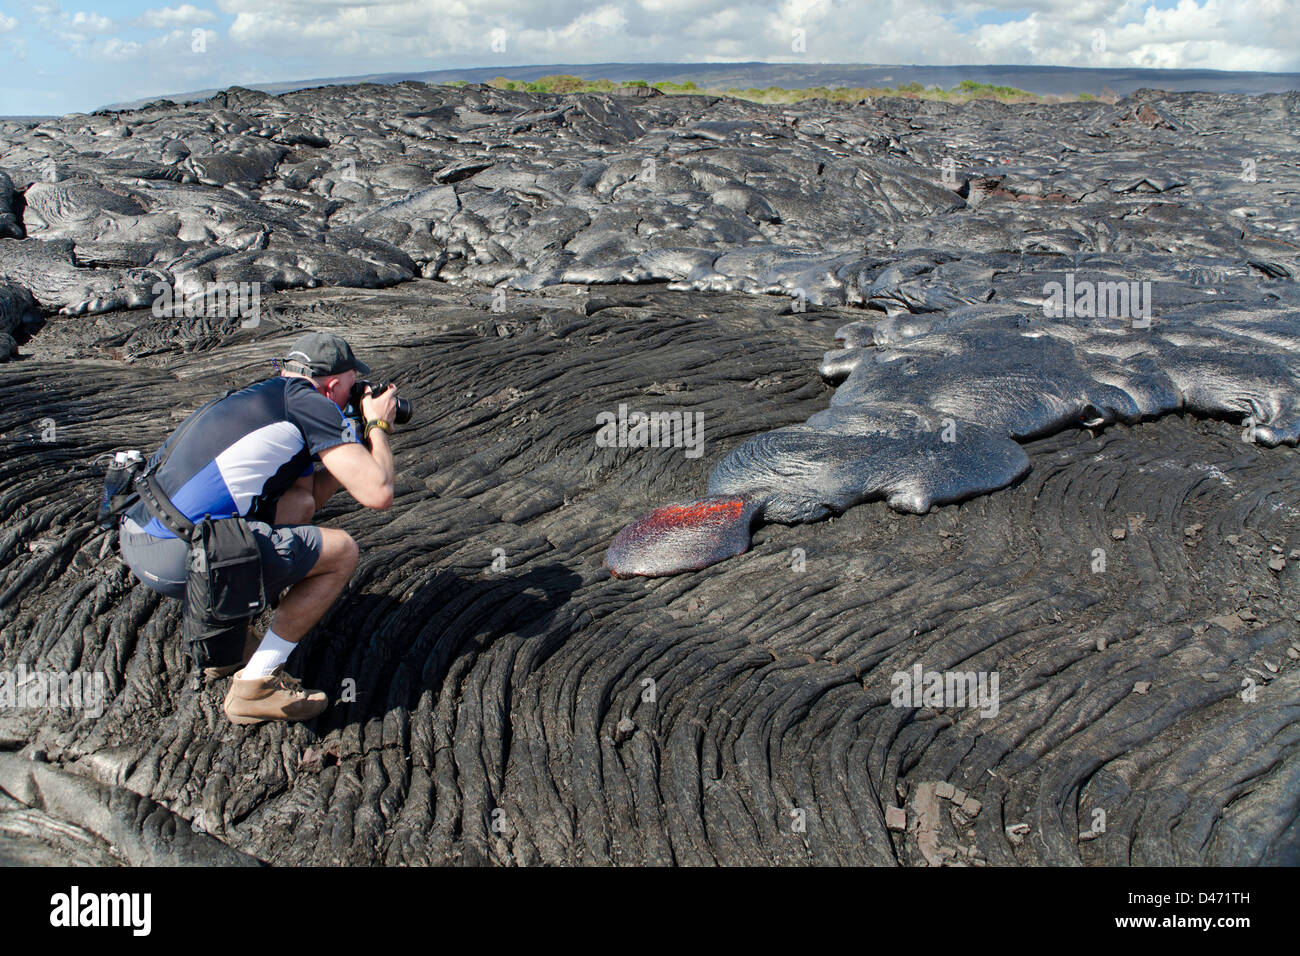 A photographer (MR) shooting a new, slow moving, Pahoehoe lava flow from Kilauea, Big Island, Hawaii. - Stock Image